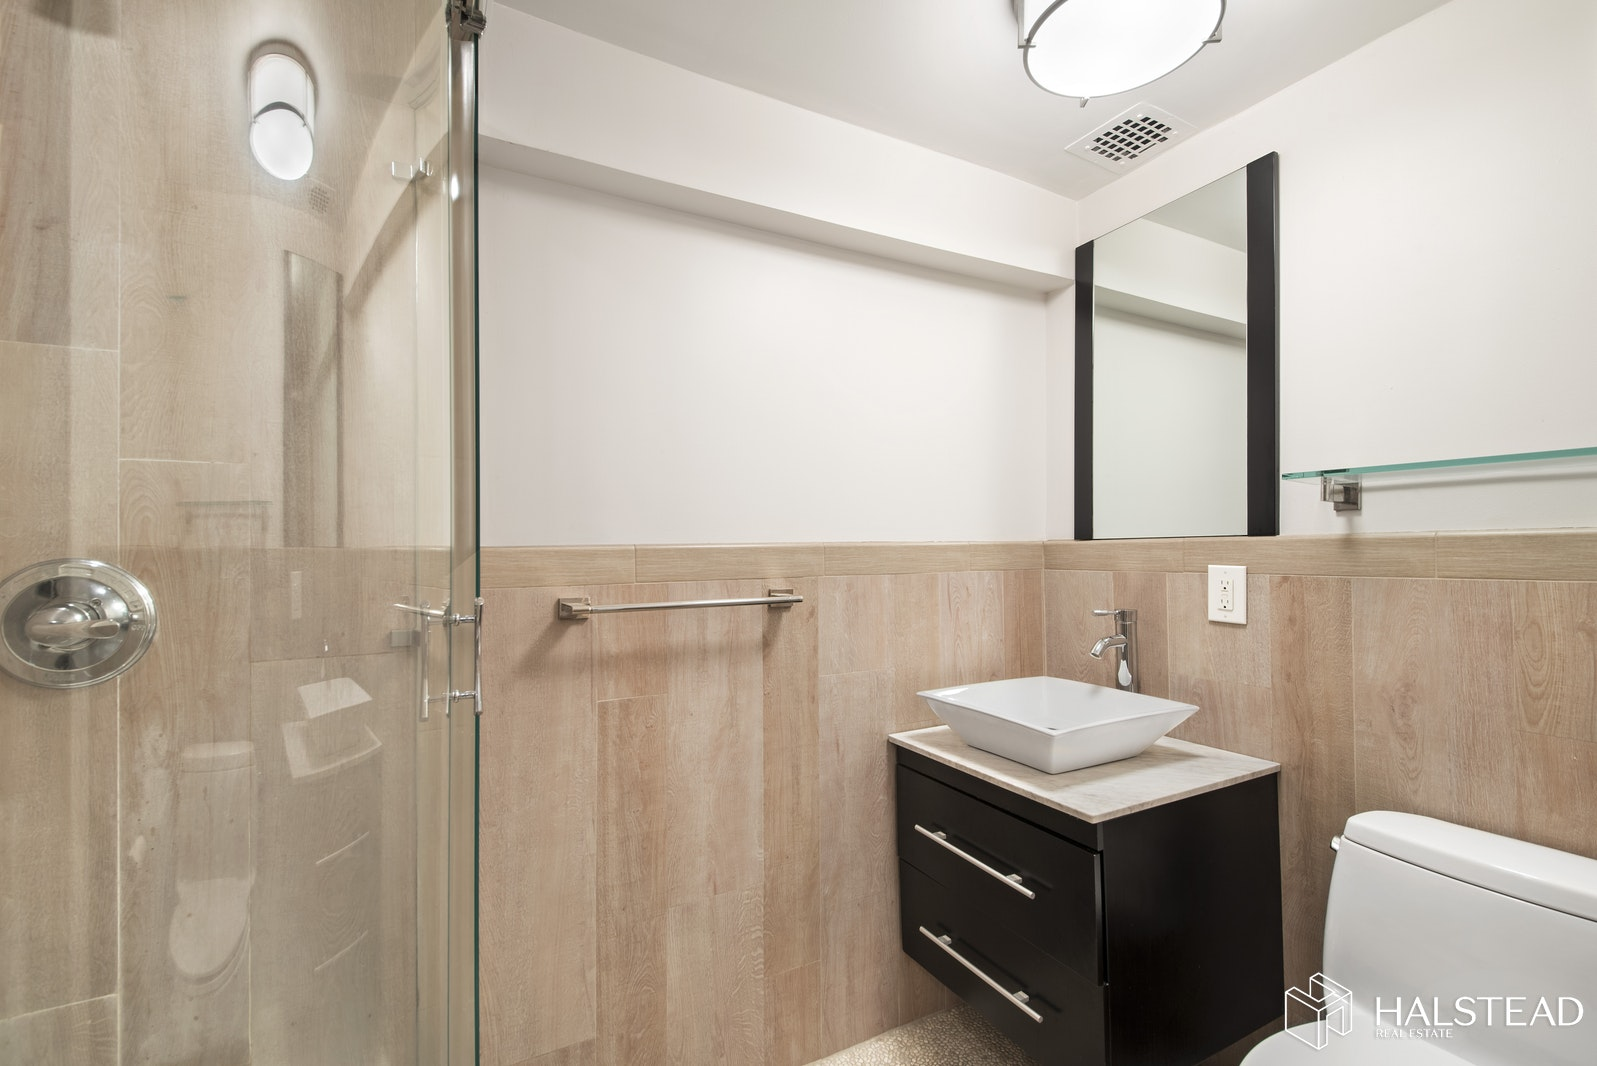 146 West 82nd Street 1b, Upper West Side, NYC, 10024, $545,000, Property For Sale, Halstead Real Estate, Photo 7